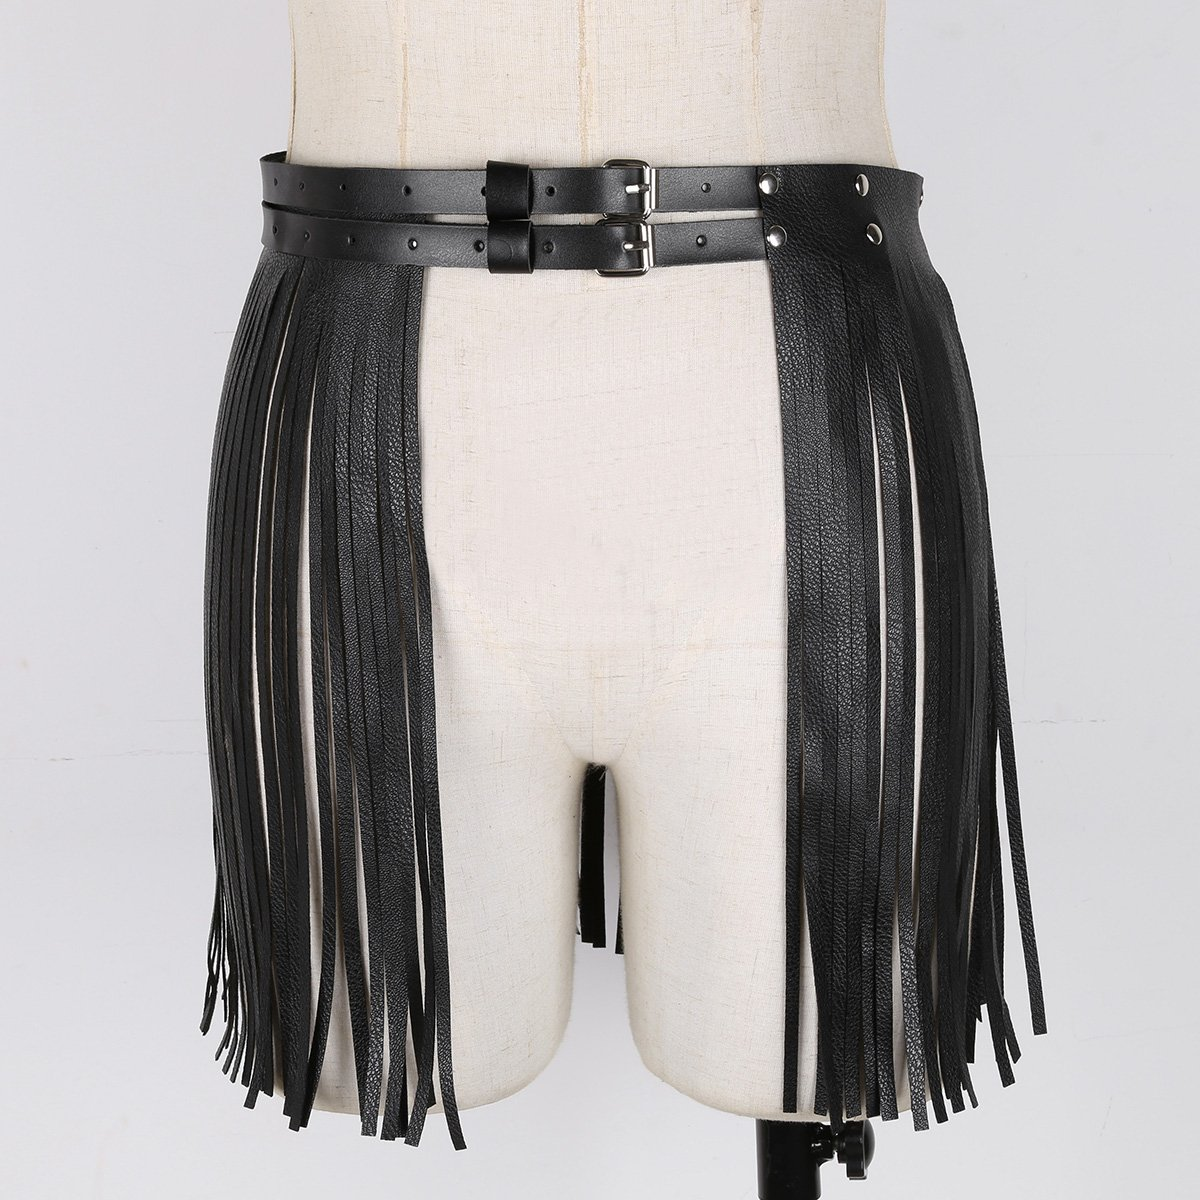 iEFiEL Women Faux Leather Waistband Fringe Tassel Skirt with Adjustable Belt for Party Dance Performance Costume